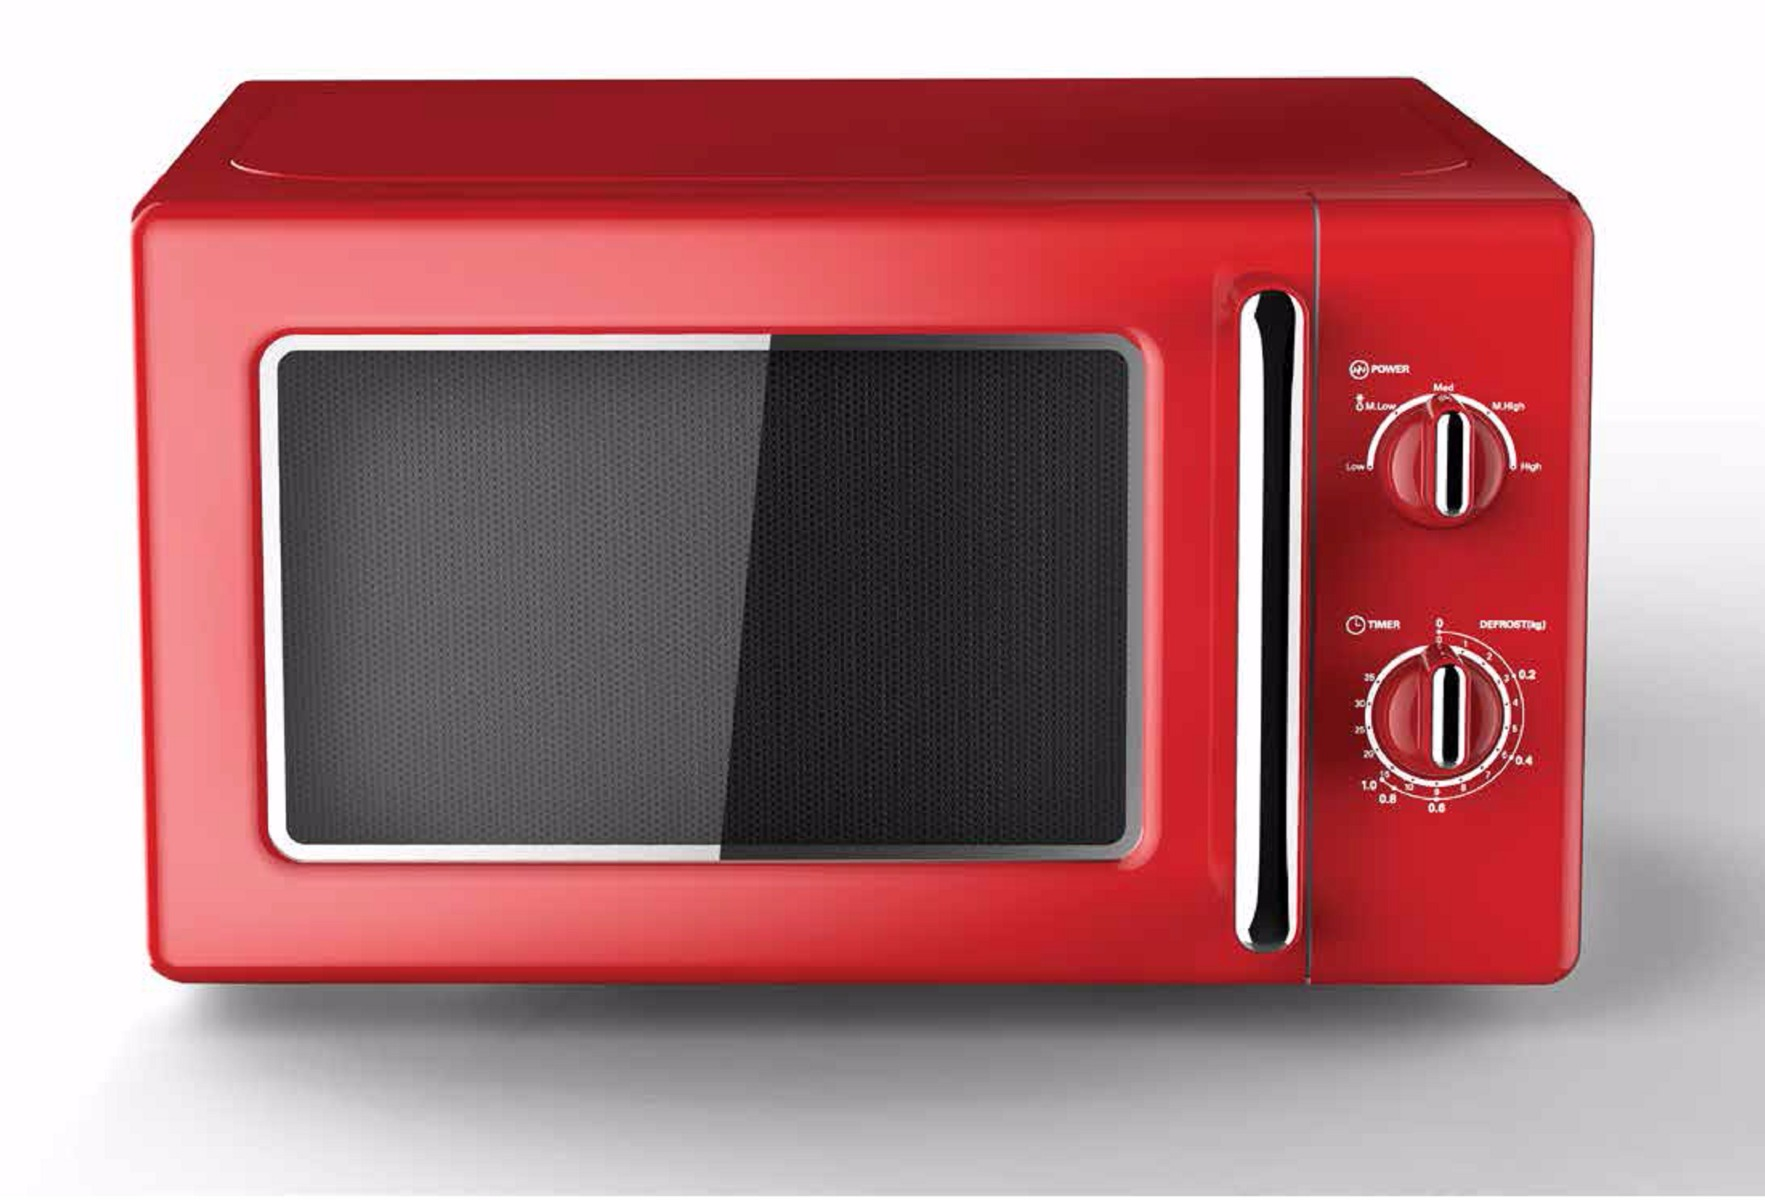 Point P22720mrrd Retro Microwave Red